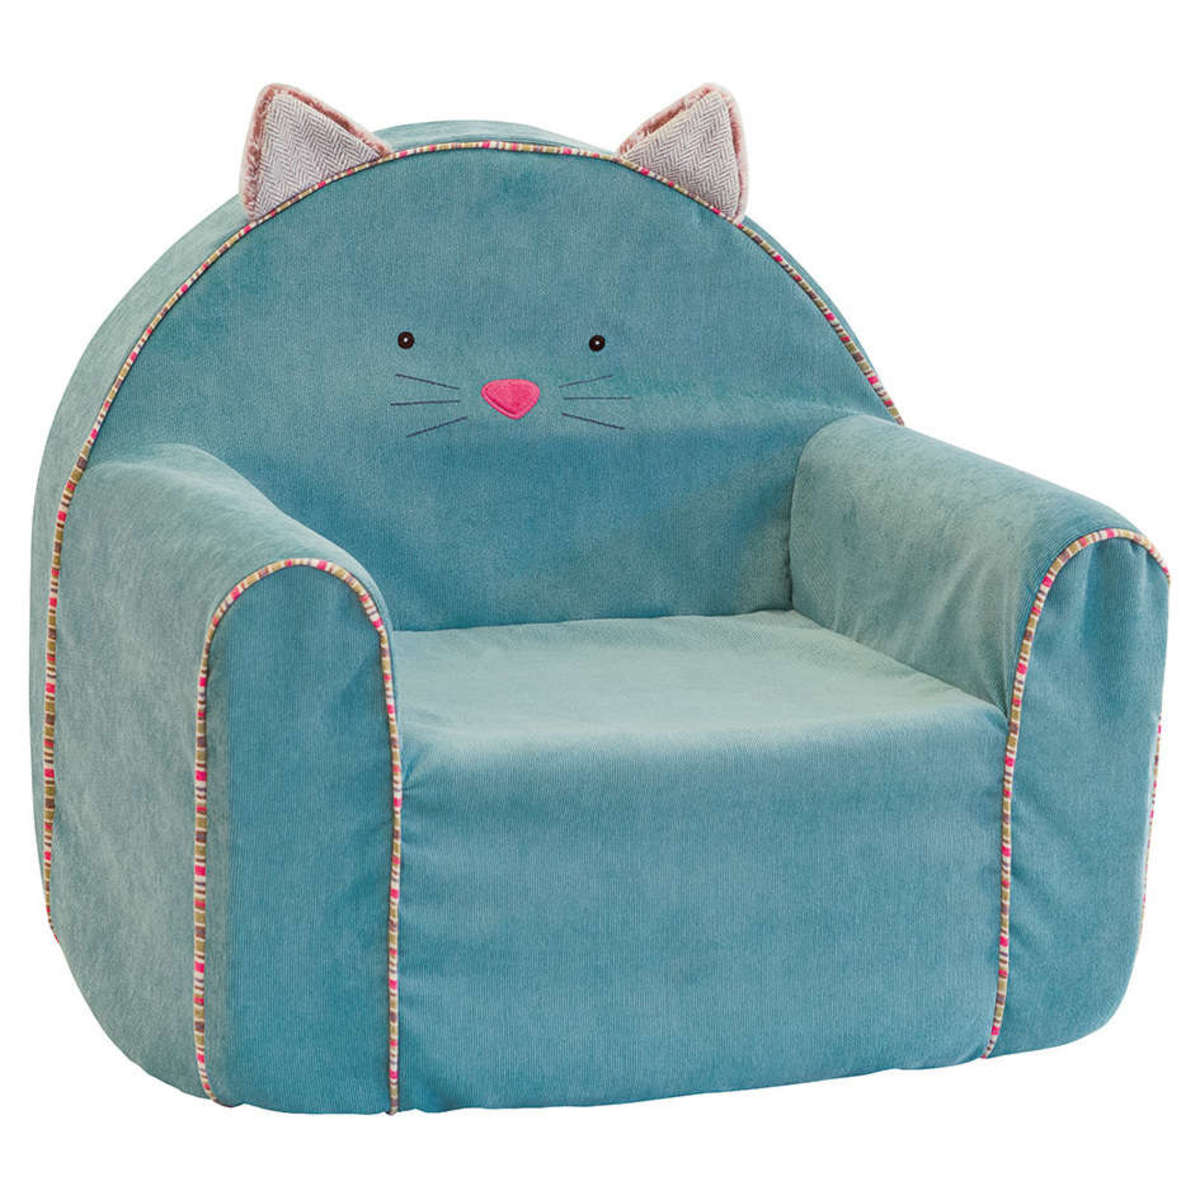 moulin roty chauffeuse les pachats fauteuil moulin. Black Bedroom Furniture Sets. Home Design Ideas